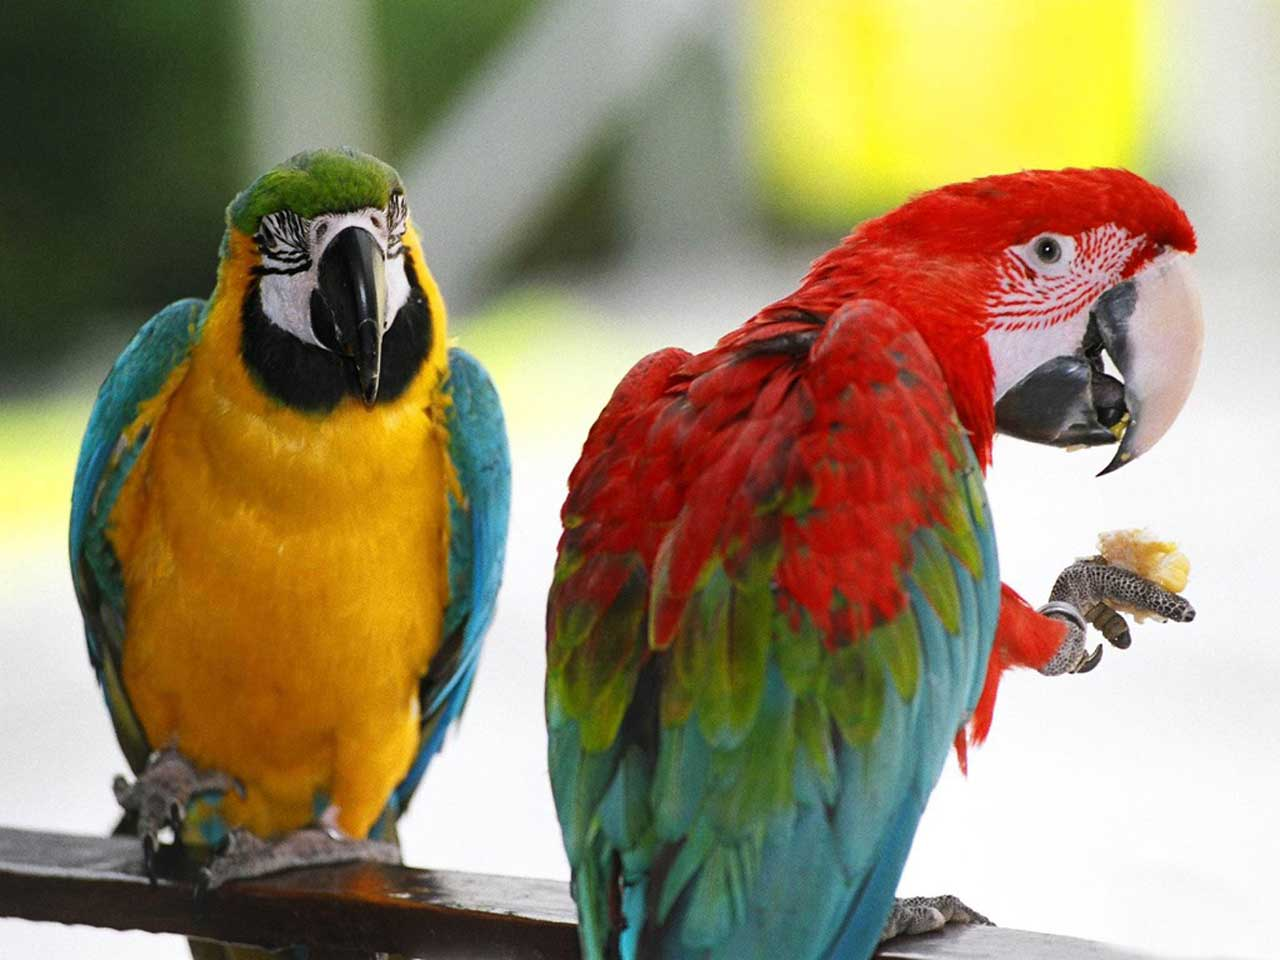 All Wallpapers Parrot Hd Wallpapers 1 1280x960